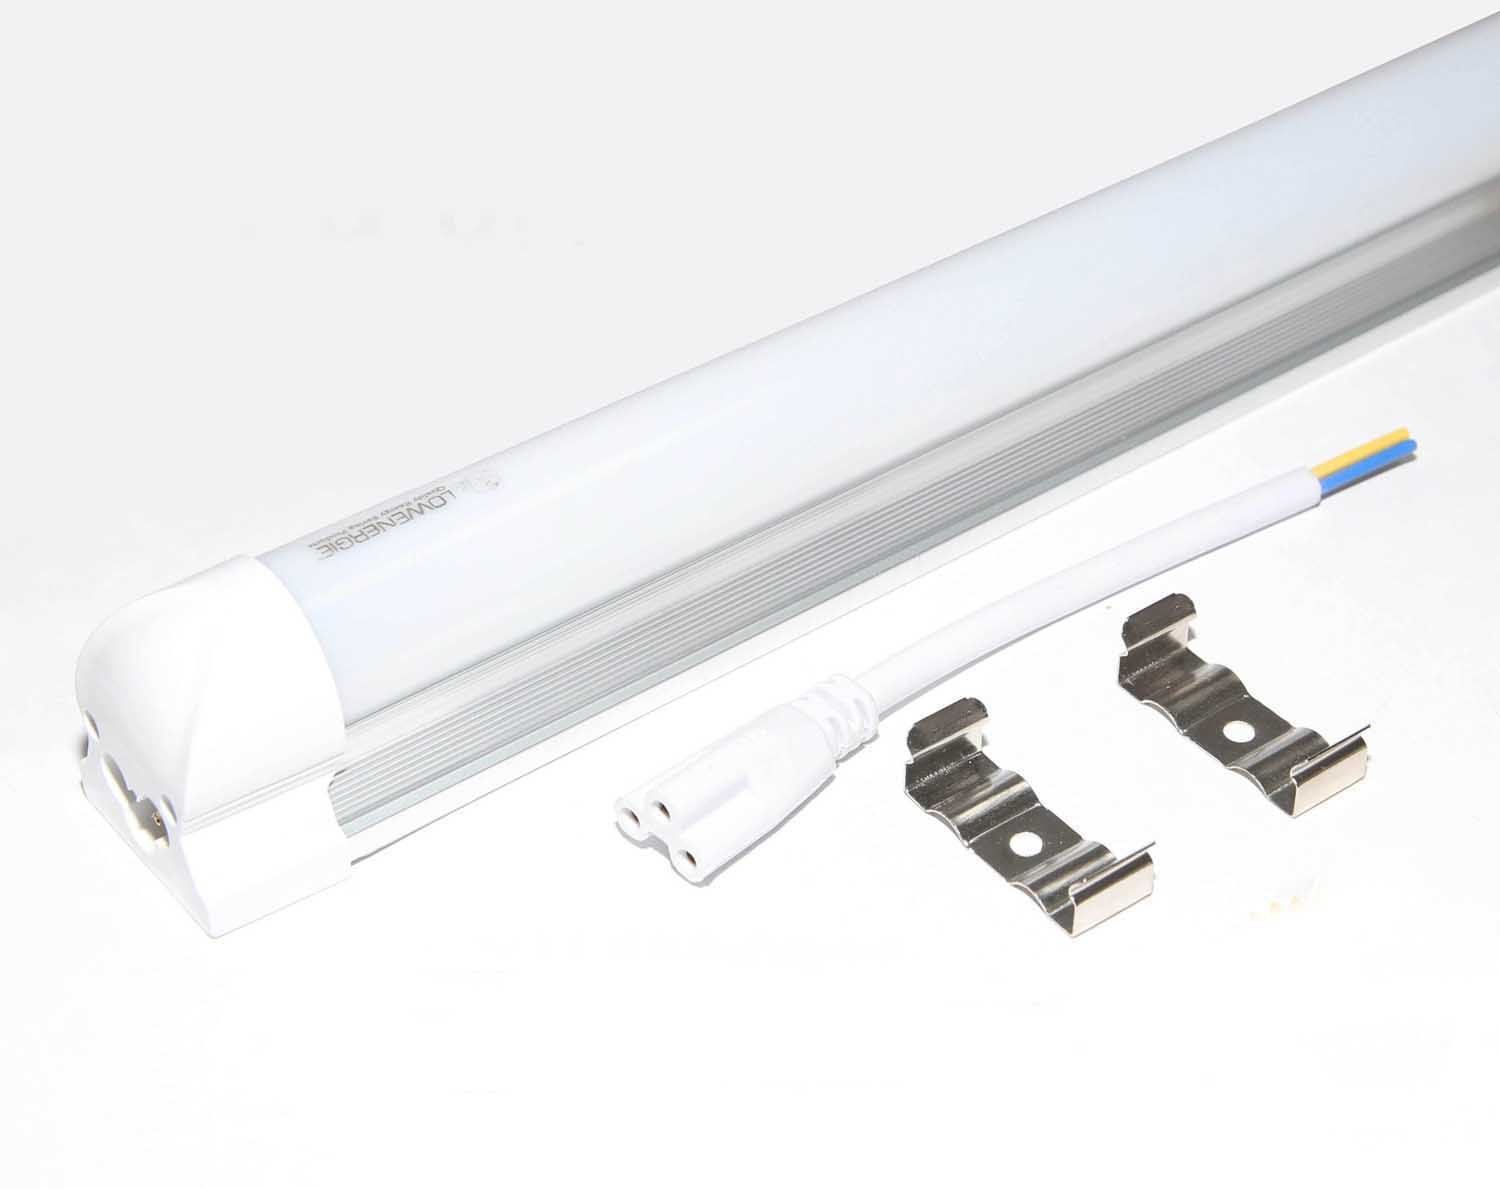 900mm 3ft Integrated LED Tube Light, 4000k Neutral White, Frosted Cover, Energy Saving, Fluorescent Lighting Replacement, Direct Ceiling Mounting Lowenergie